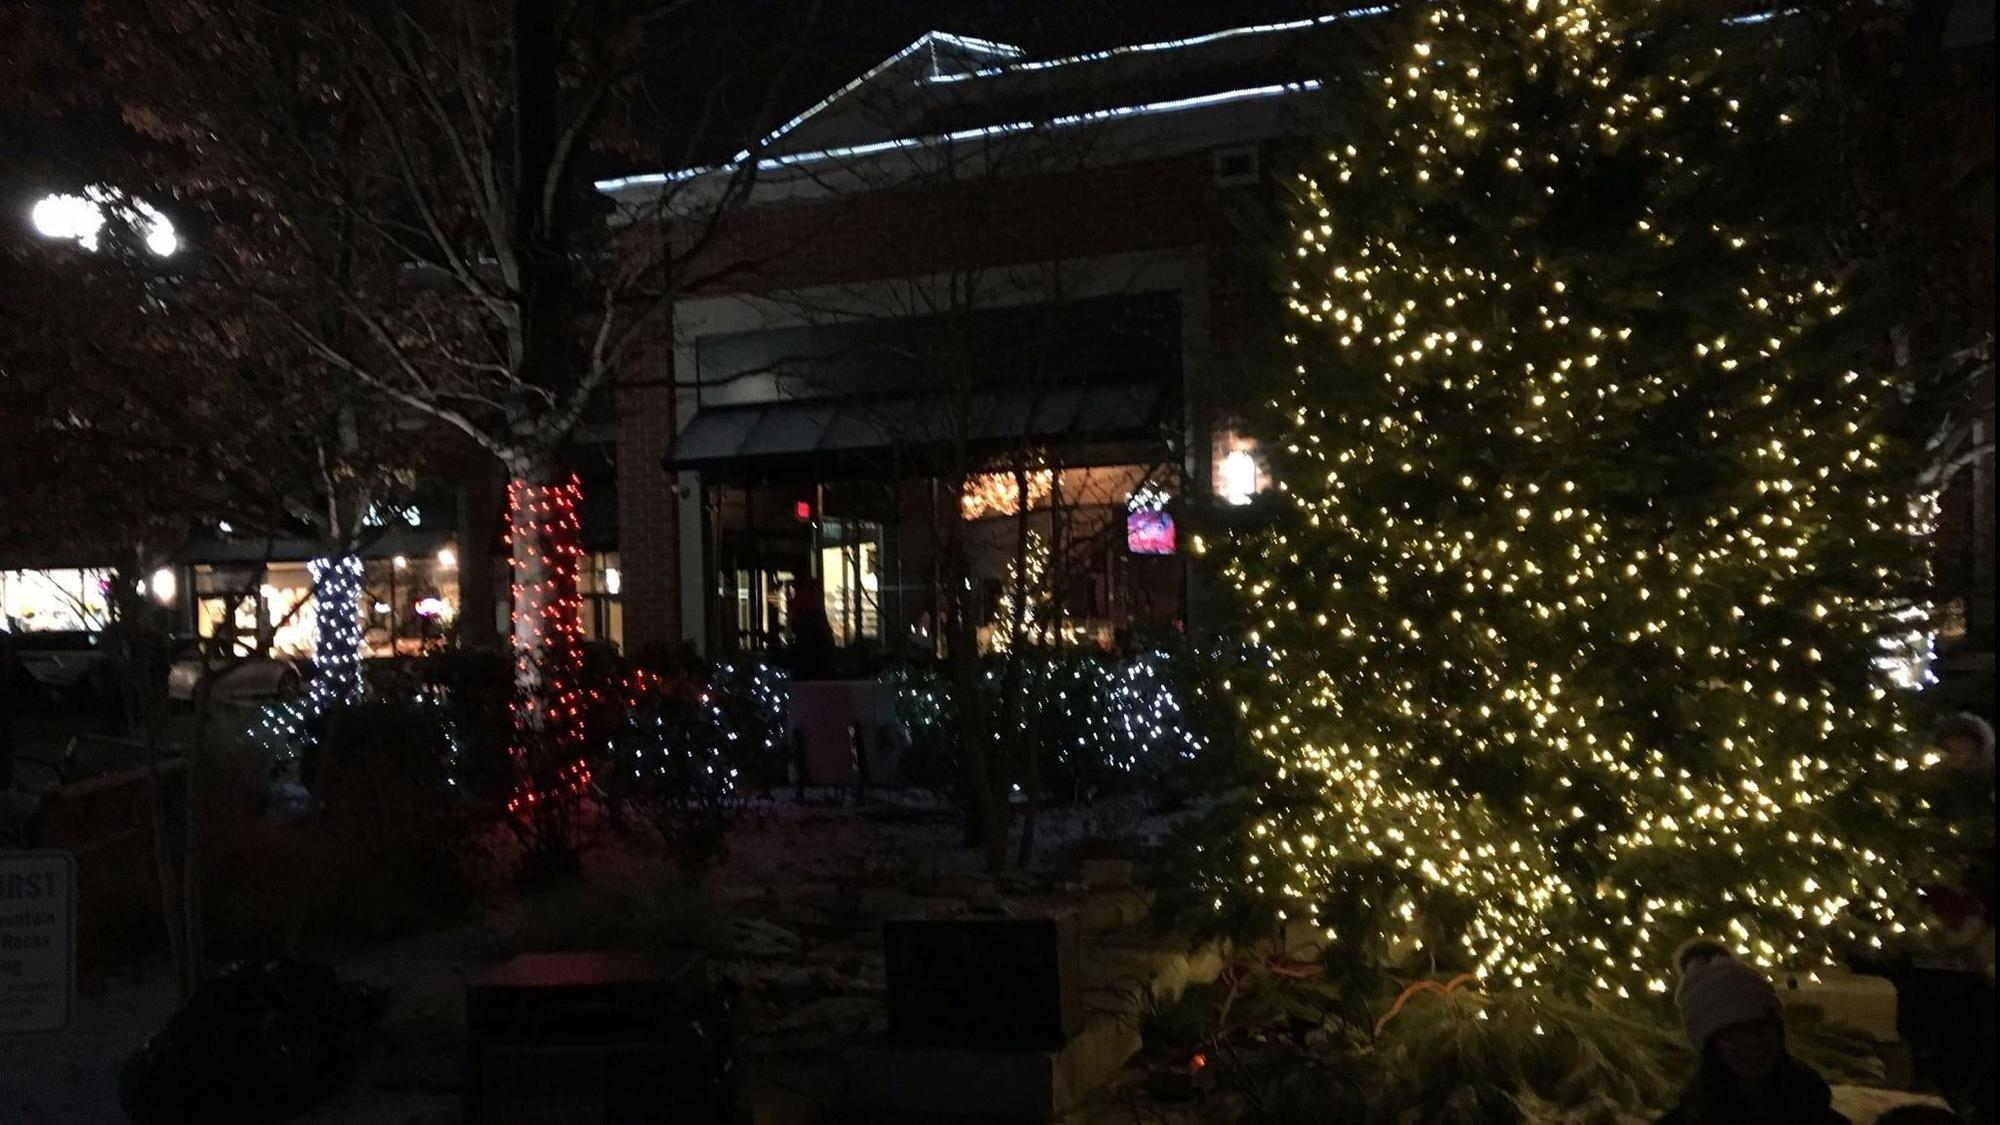 Deerfield lights up downtown to start the holiday season